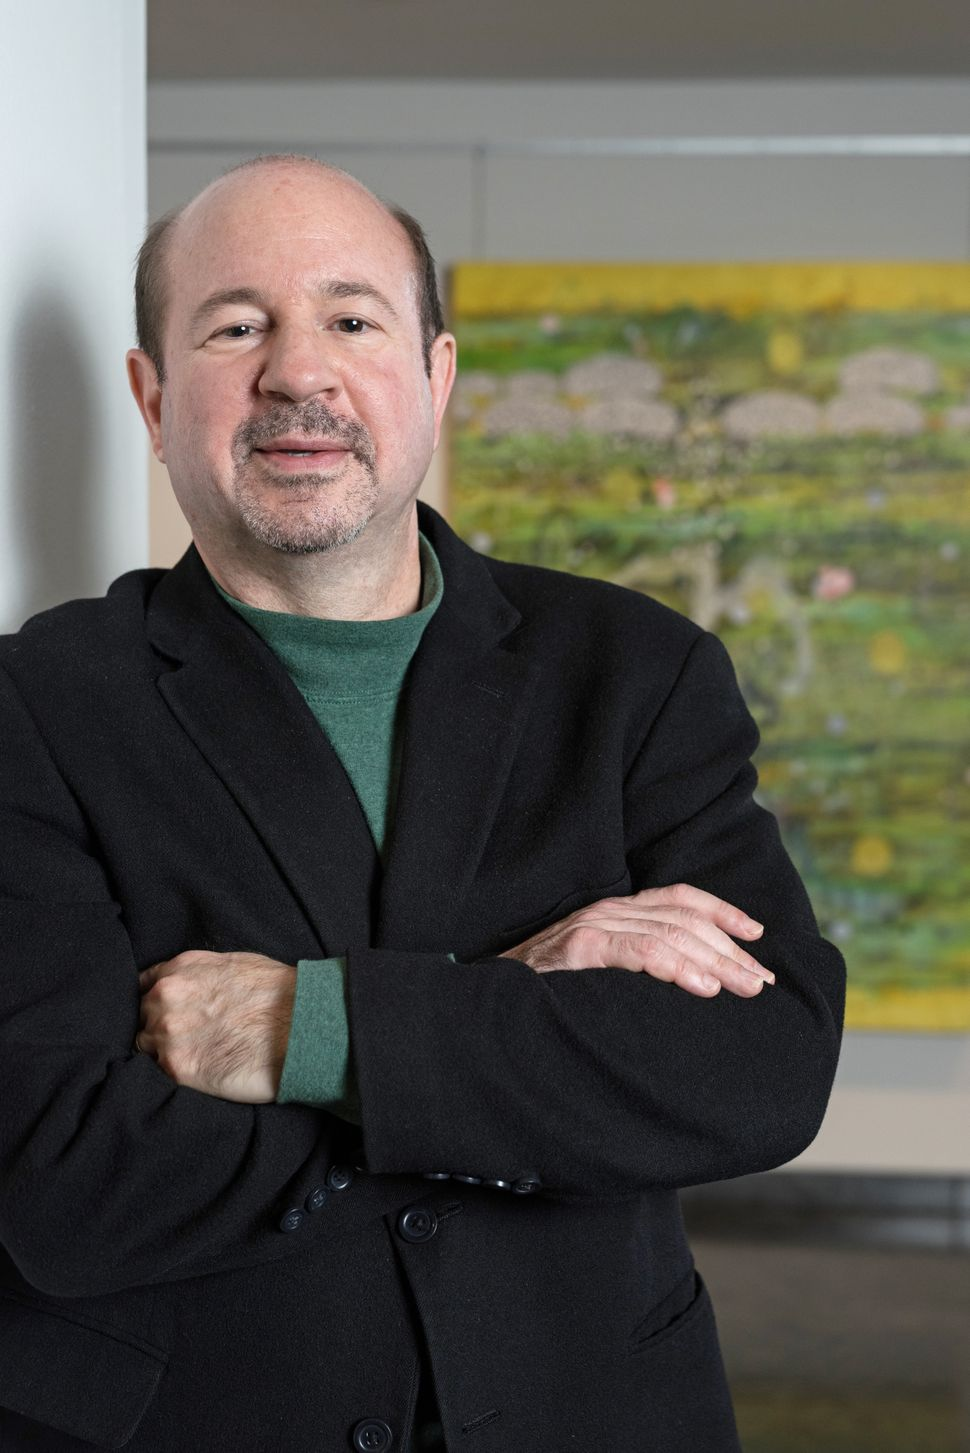 Michael Mann, a climate scientist, says,